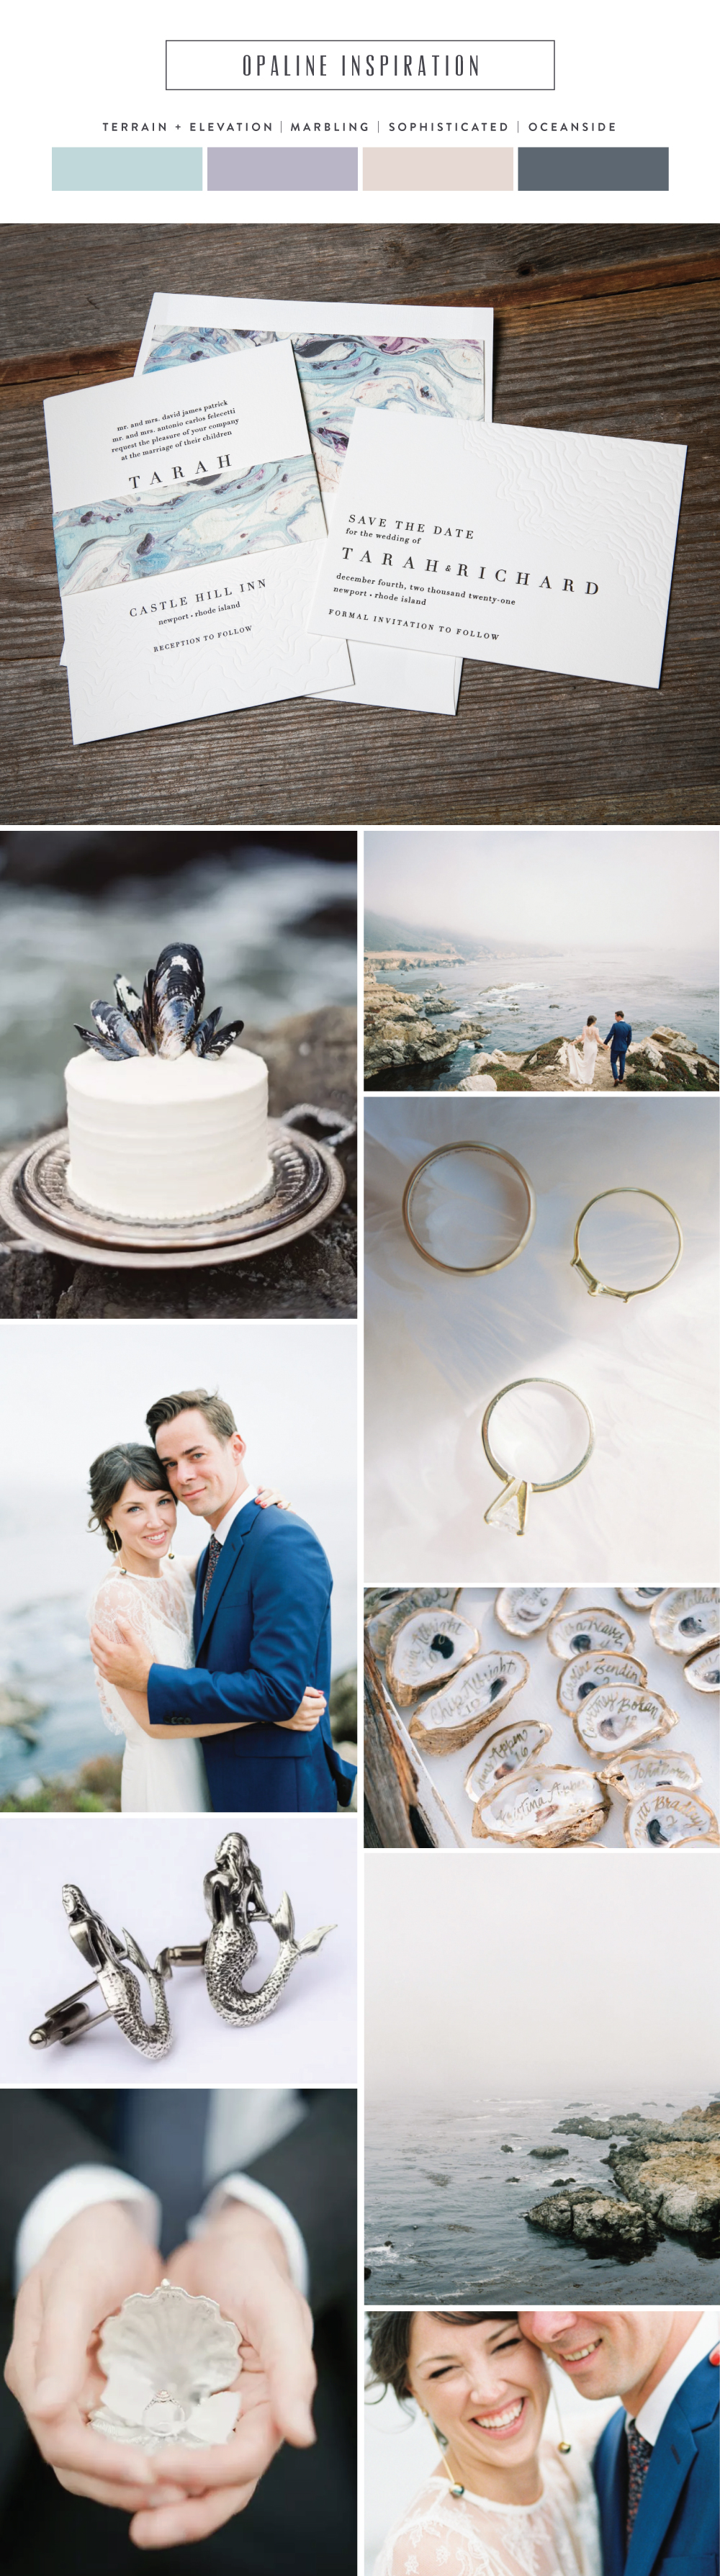 Introducing Opaline: sophisticated oceanside wedding invitation inspiration by Bella Figura